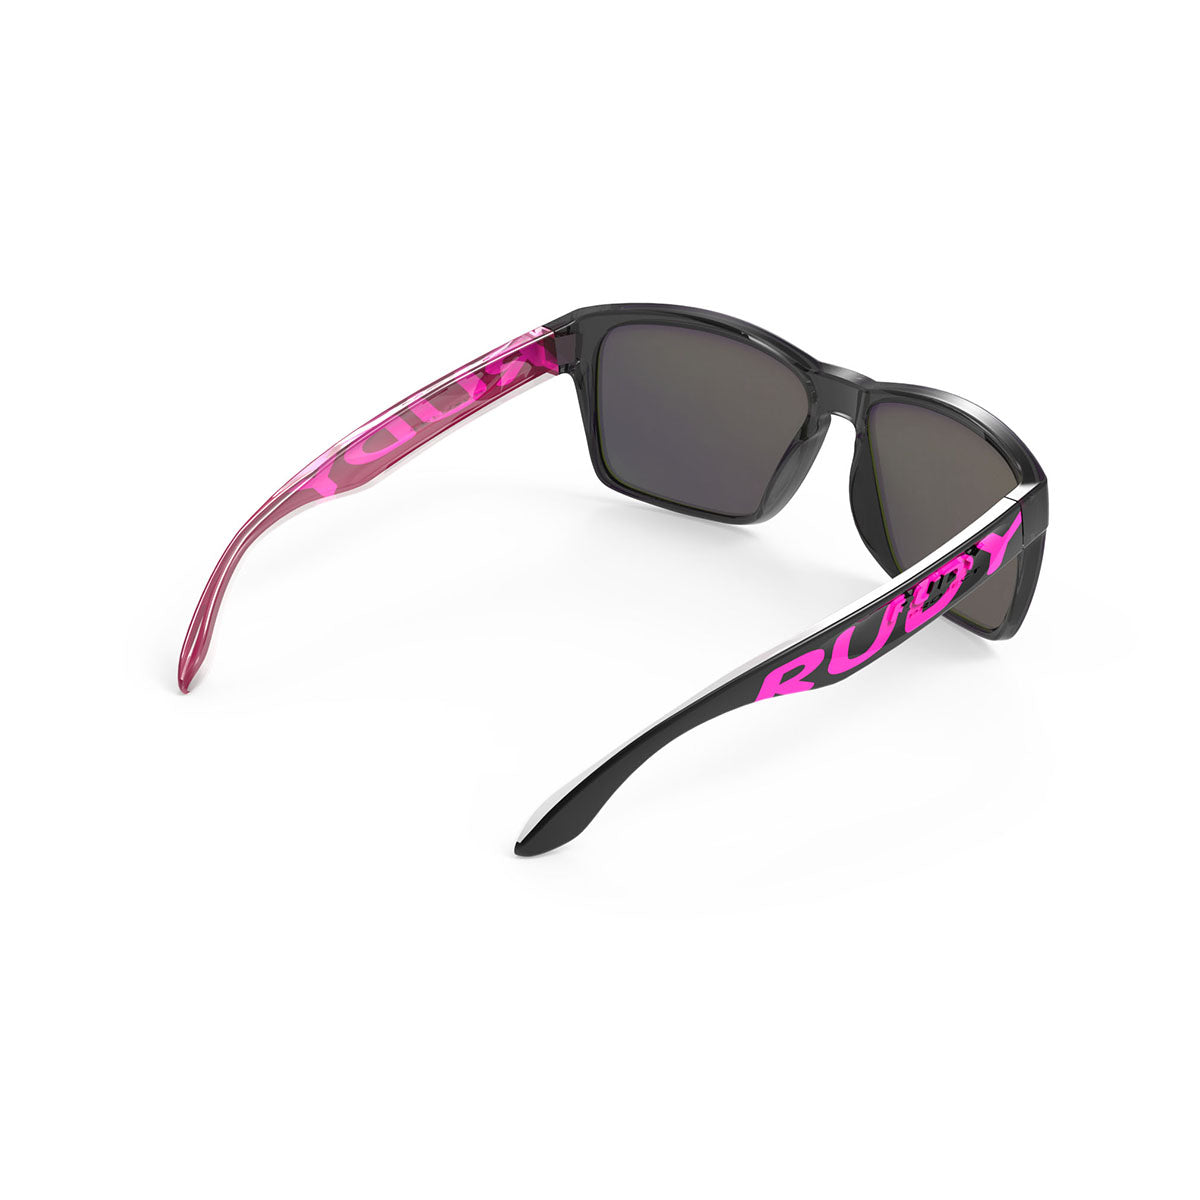 Rudy Project - Spinhawk - frame color: Crystal Ash Pink - lens color: Multilaser Violet - Bumper Color:  - photo angle: Top Back Angle Variant Hover Image